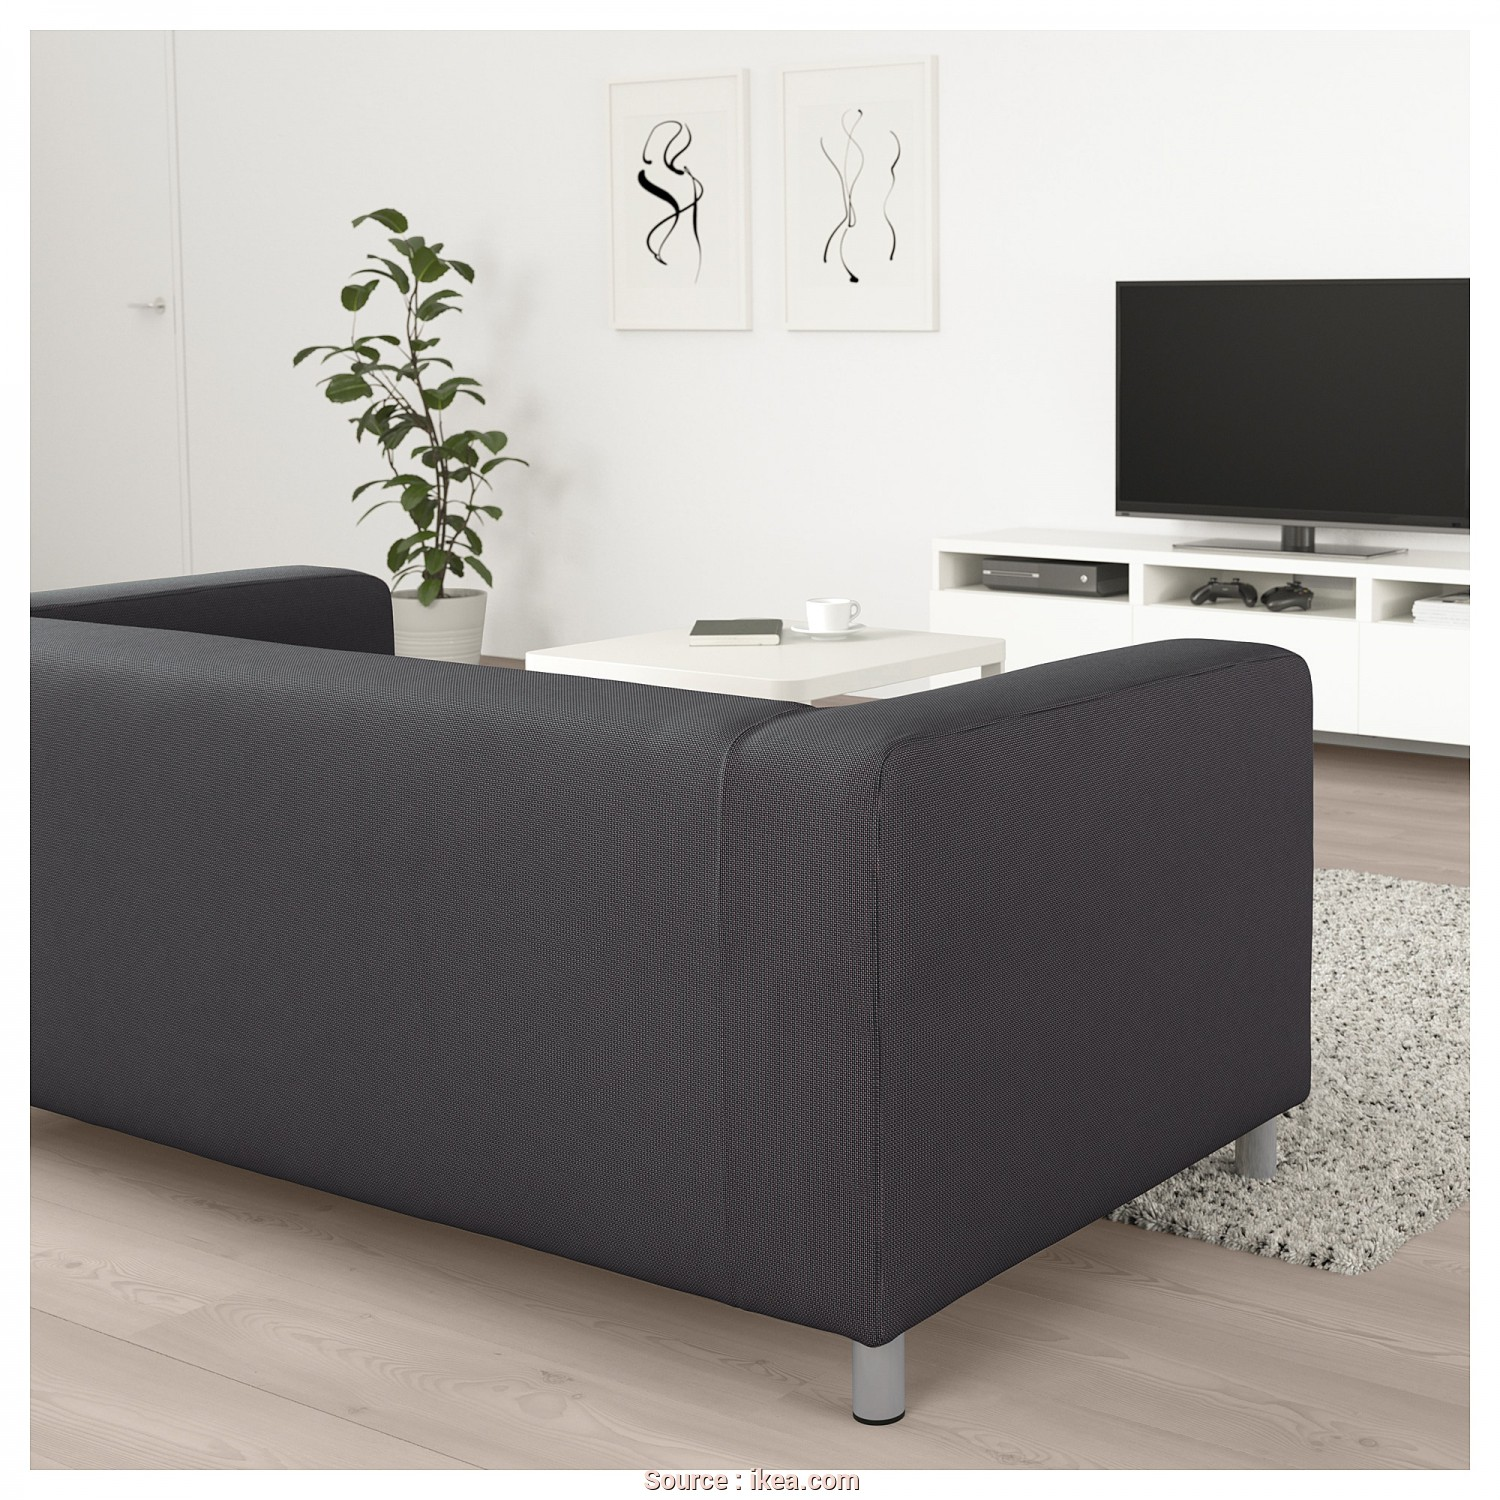 Klippan Ikea España, Originale IKEA KLIPPAN 2-Seat Sofa, Cover Is Easy To Keep Clean Since It Is